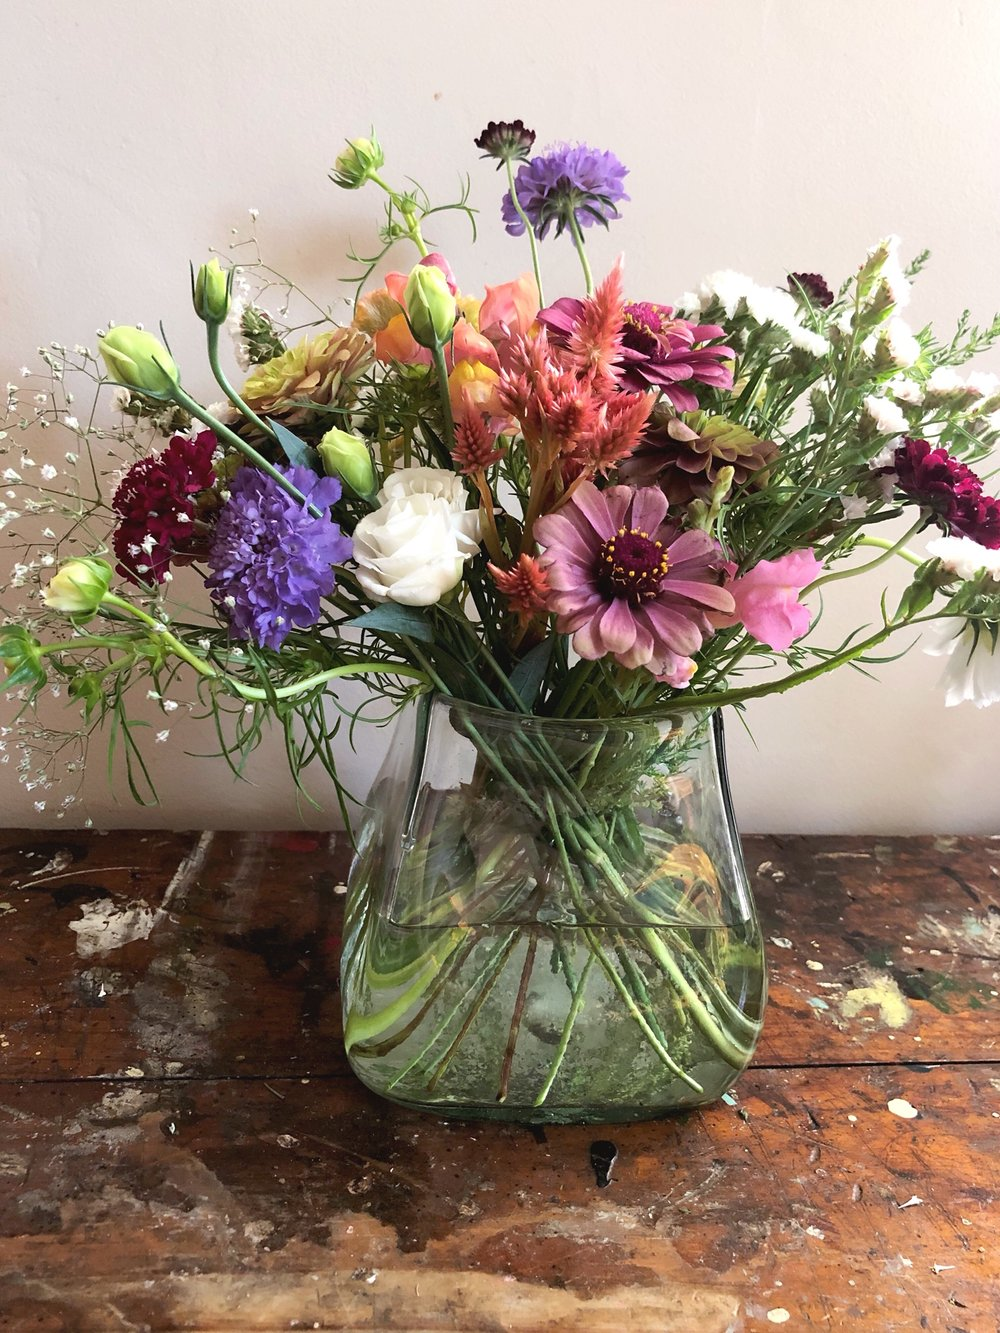 Megh's flowers artfully arranged in a vase -  Photography by Zac Bubnick